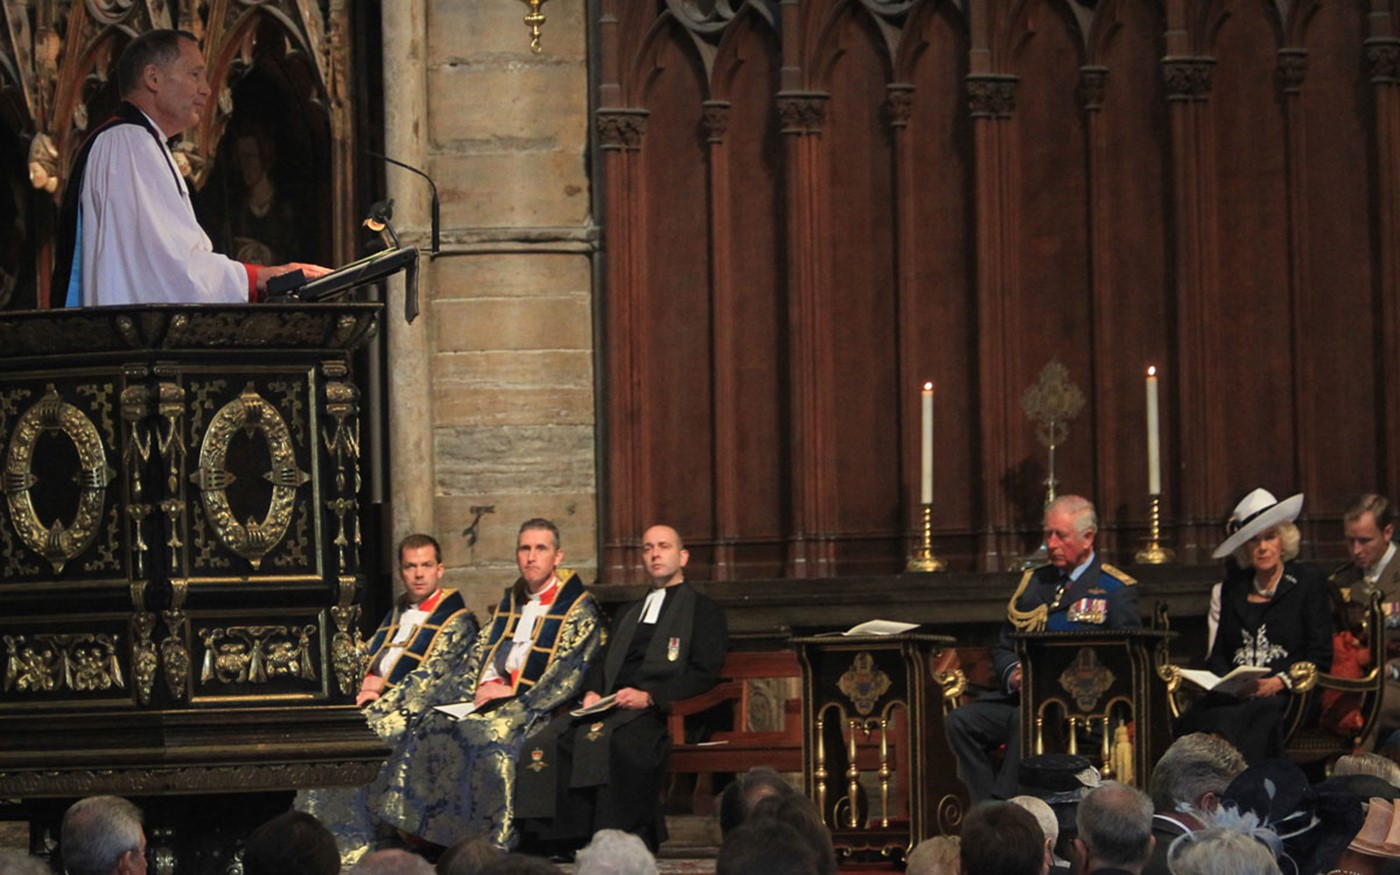 The Venerable Jonathan Chaffey, Chaplain-in-Chief of the Royal Air Force gives The Address from the Great Pulpit